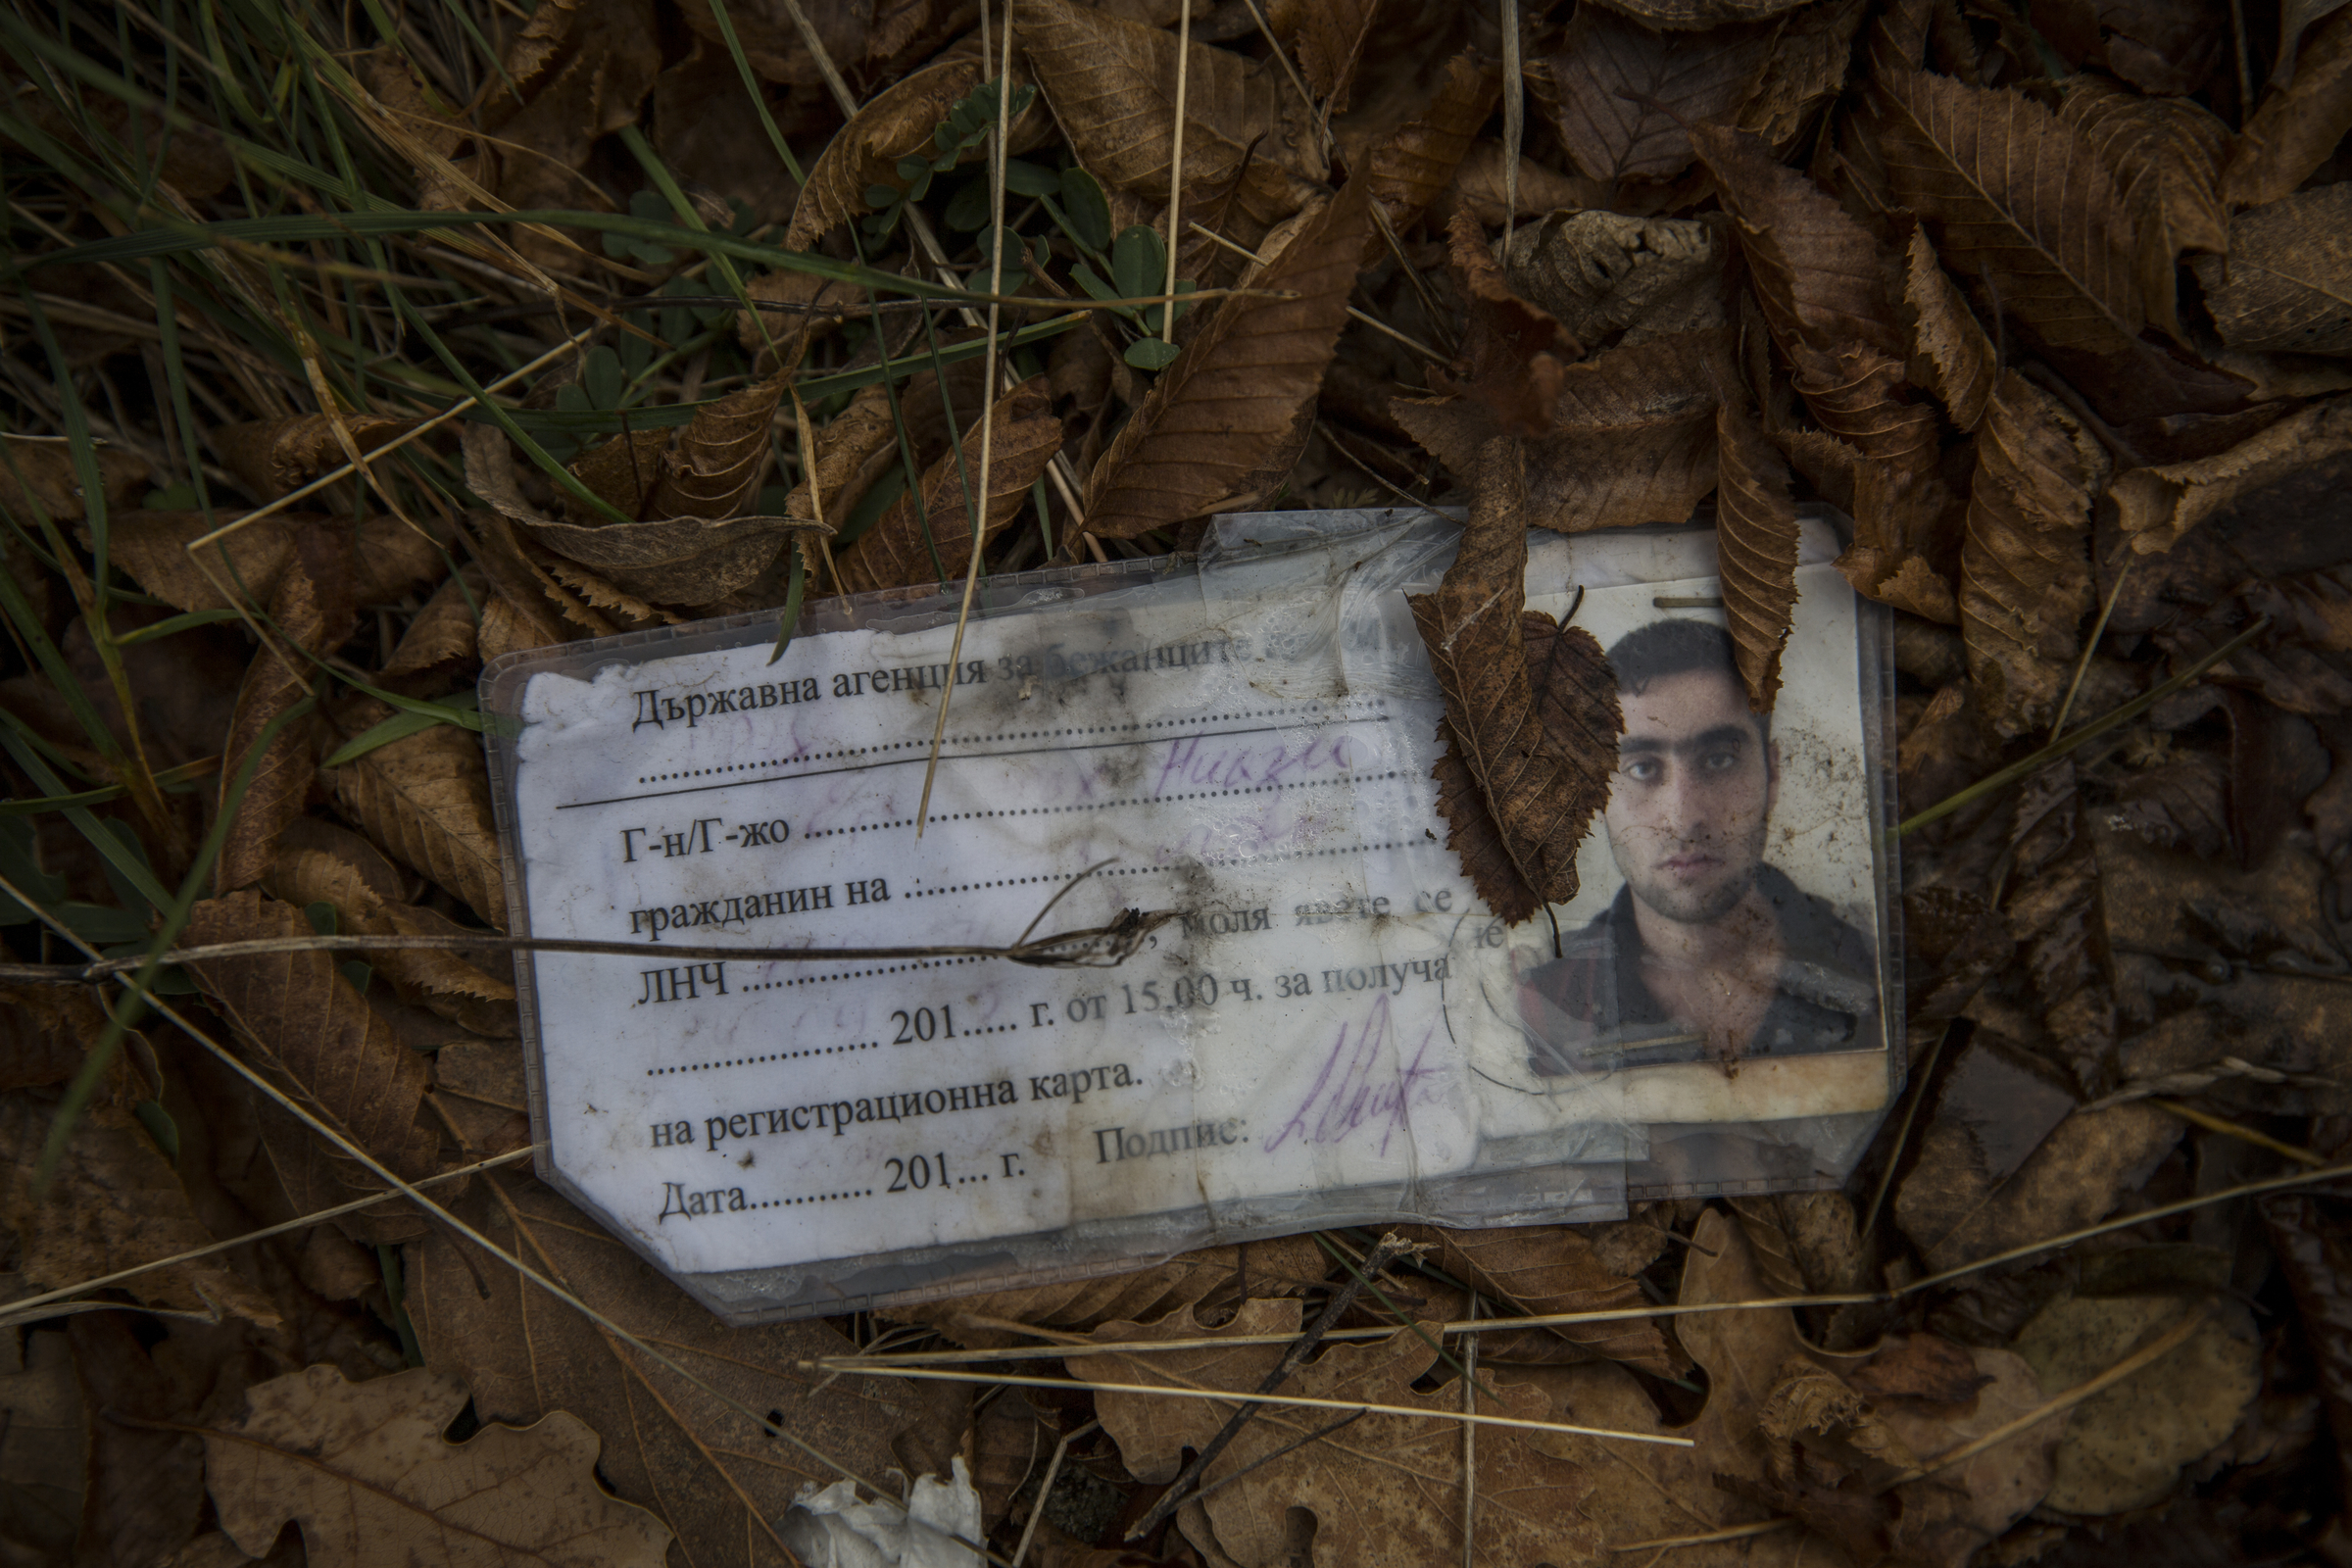 A Bulgarian identification document discarded on one of the paths through the forest that migrants use to cross into Serbia on their way to Western Europe (Jodi Hilton/IRIN)